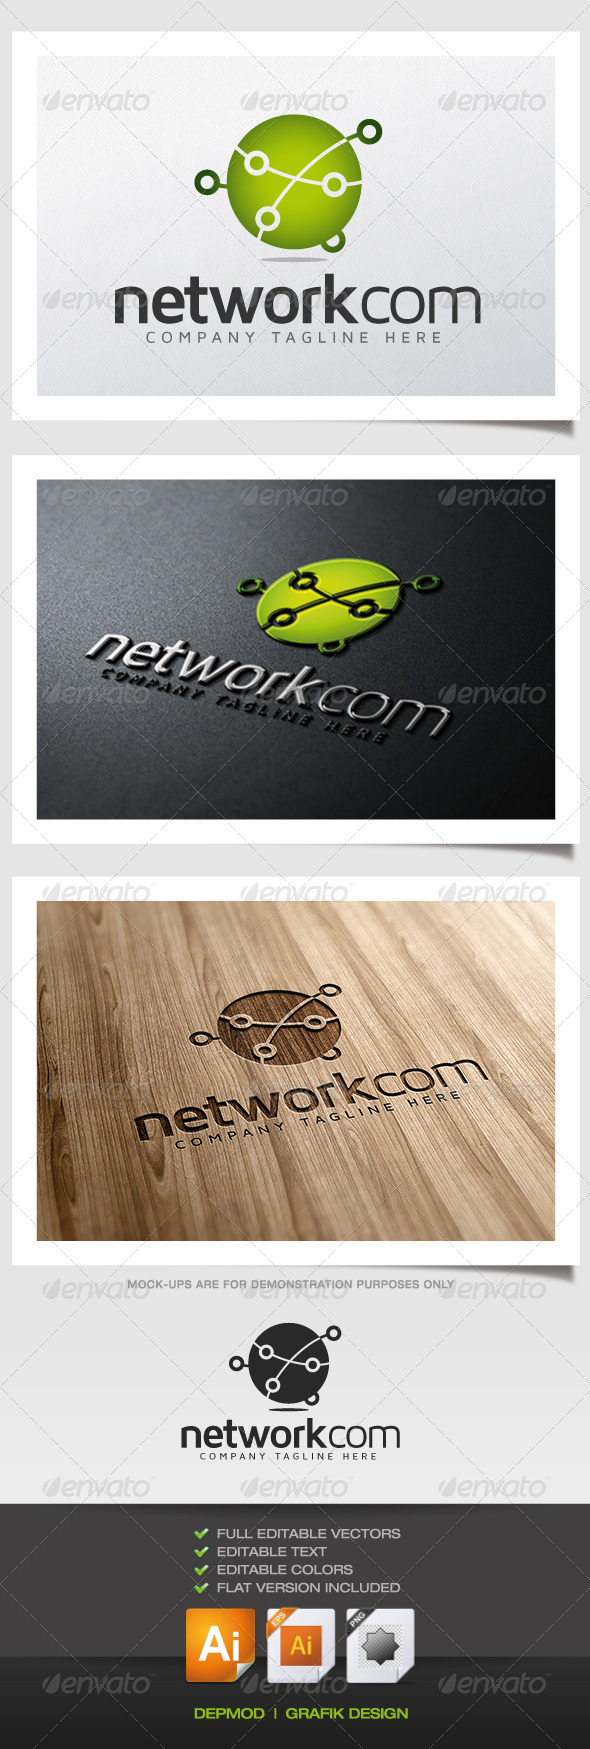 Network Com Logo - Abstract Logo Templates